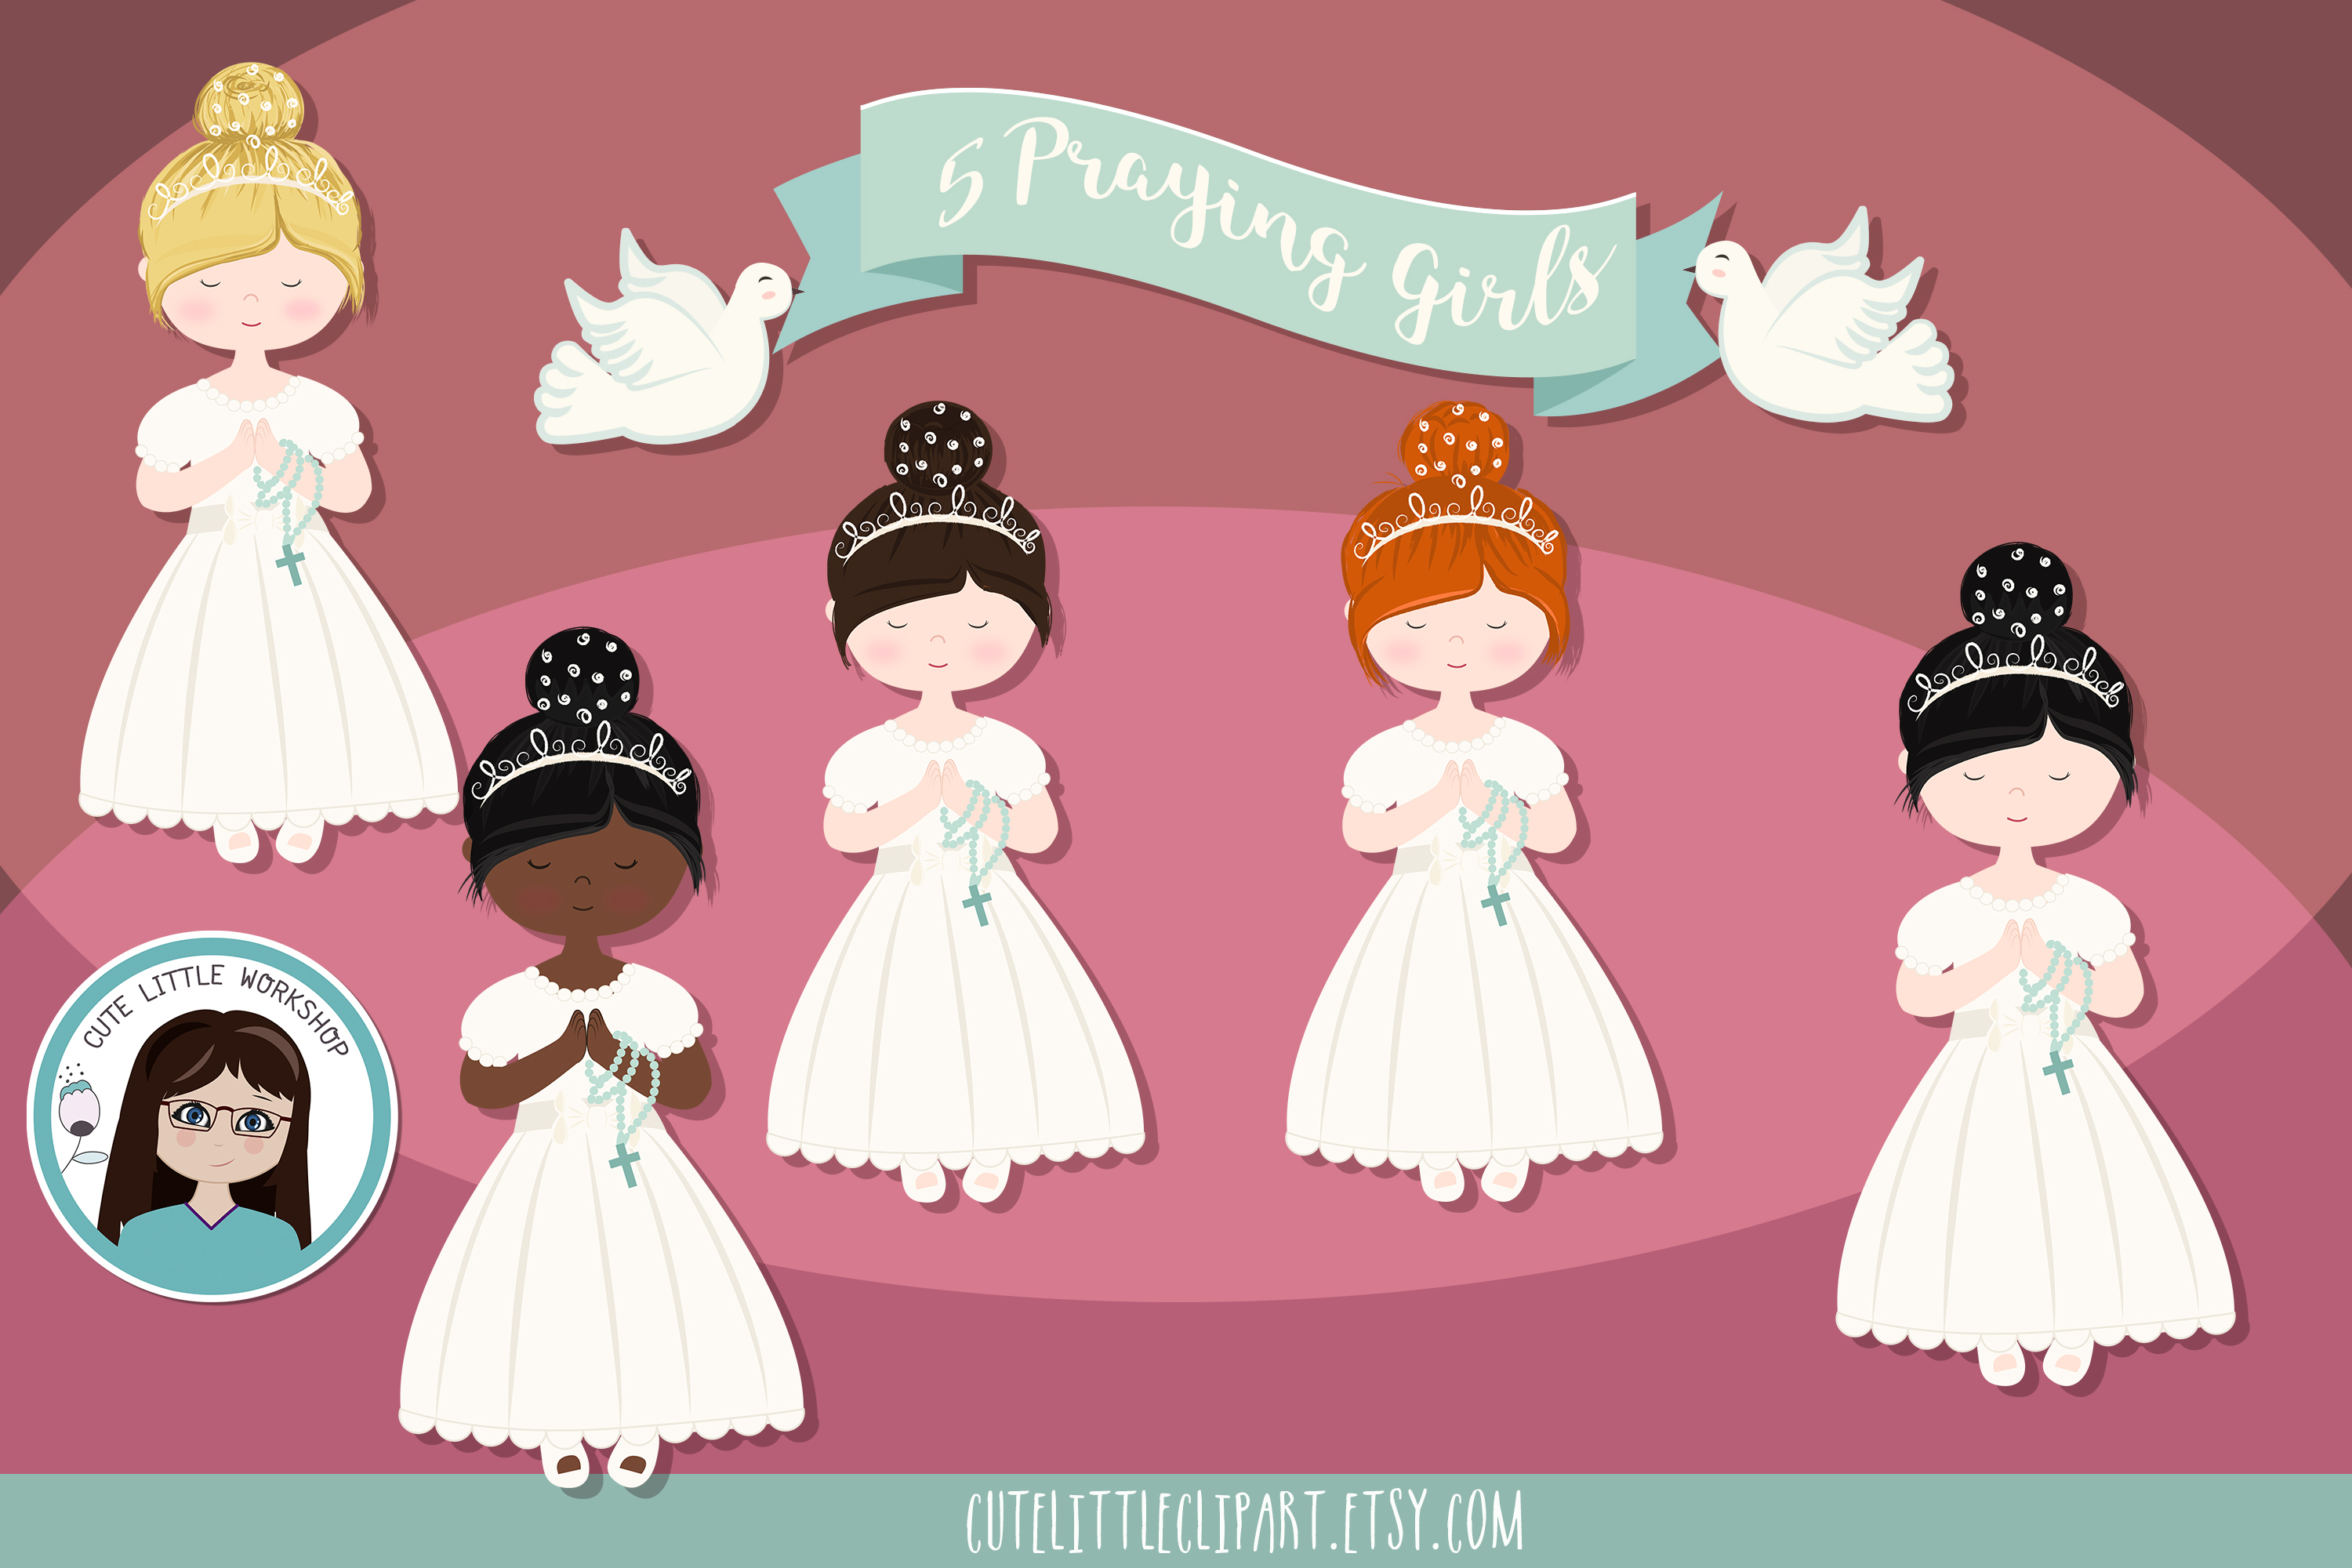 First Holy Communion Girls clipart, Five girls praying, grap example image 1